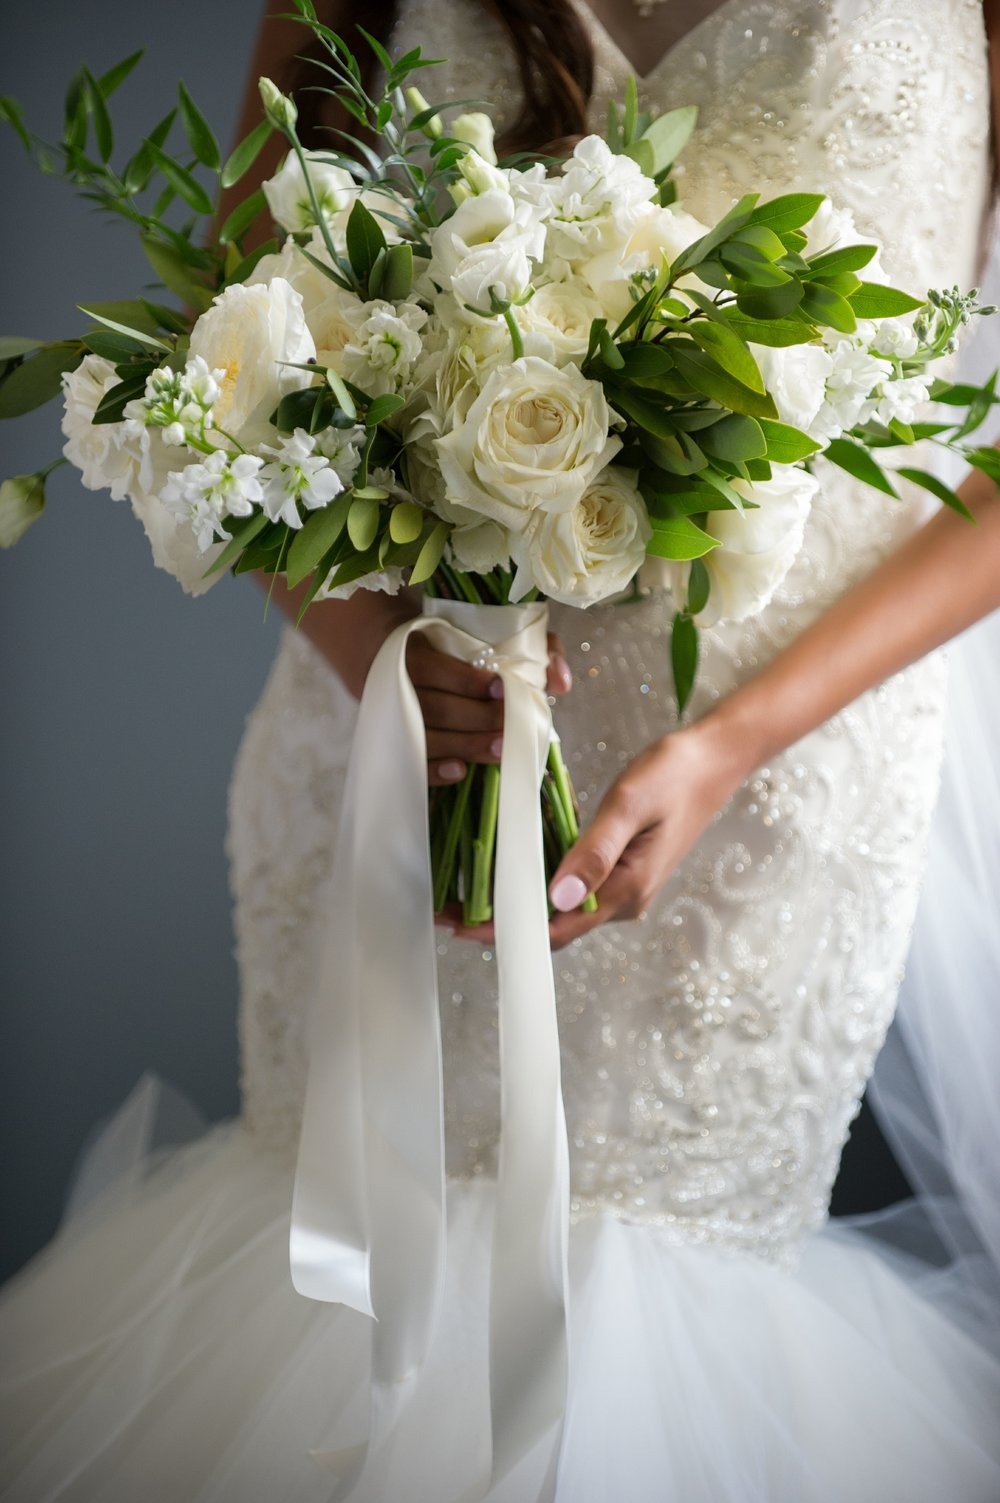 The bride carried a bouquet made of ivory roses, lisianthus, garden roses, stock, and greenery.